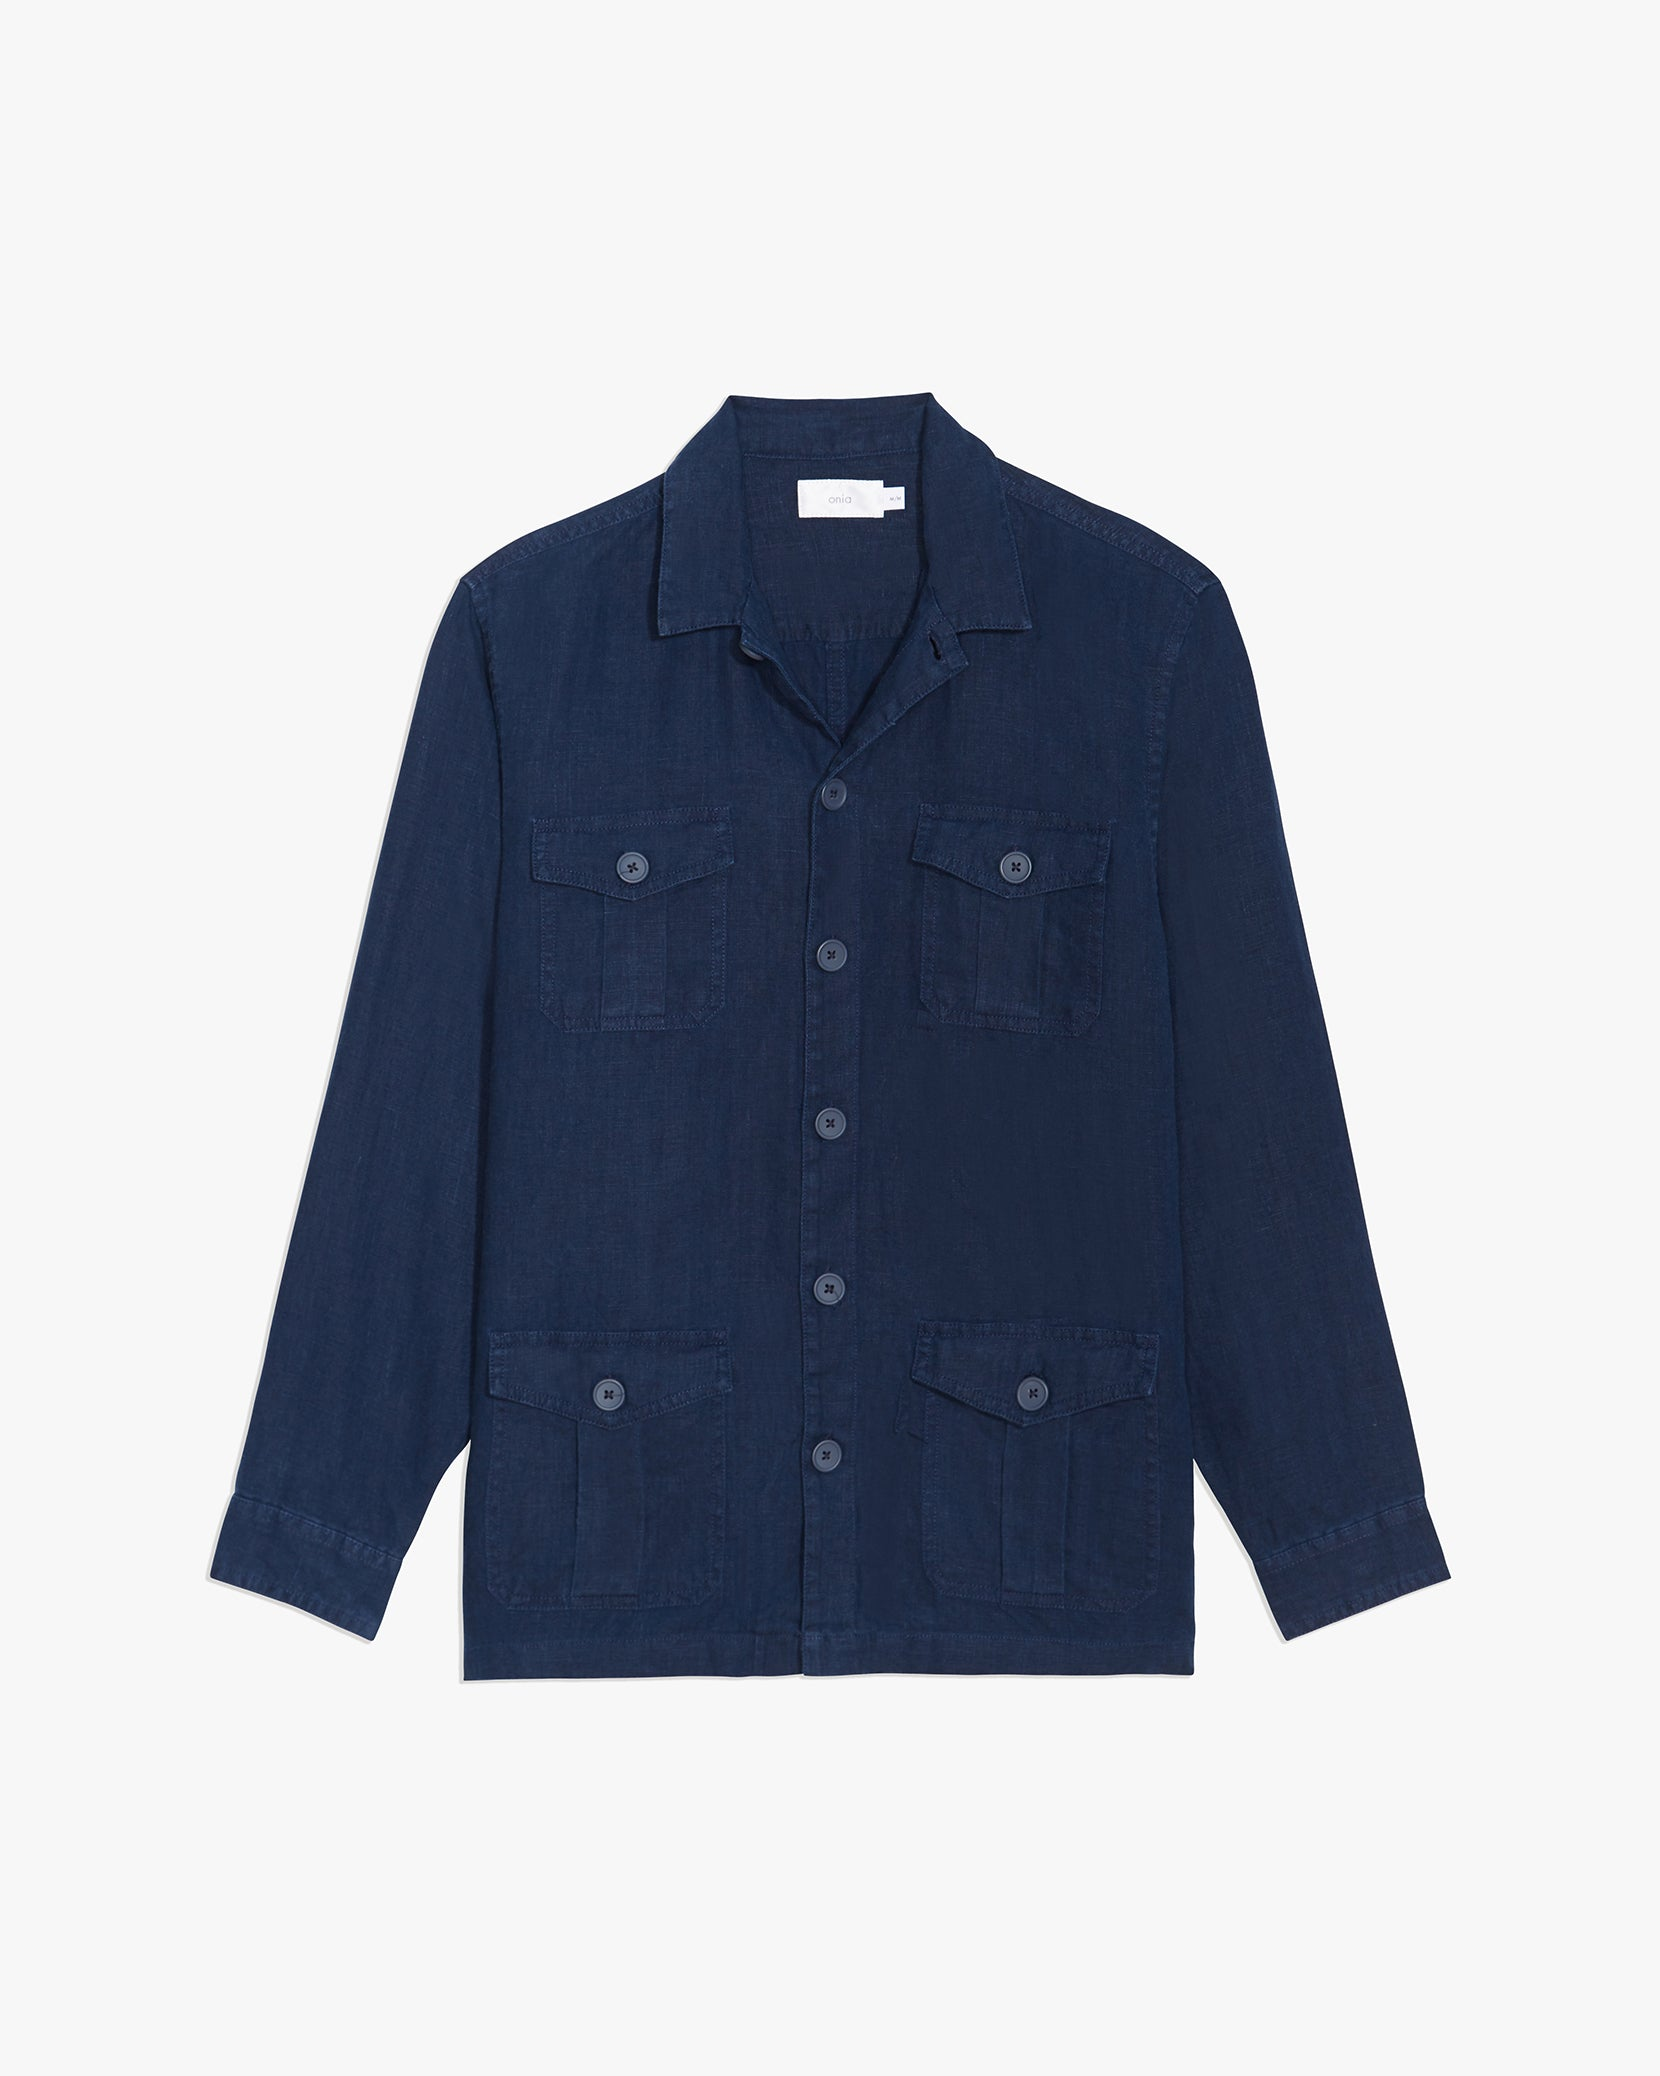 Linen Safari Jacket in Deep Navy - 10 - Onia